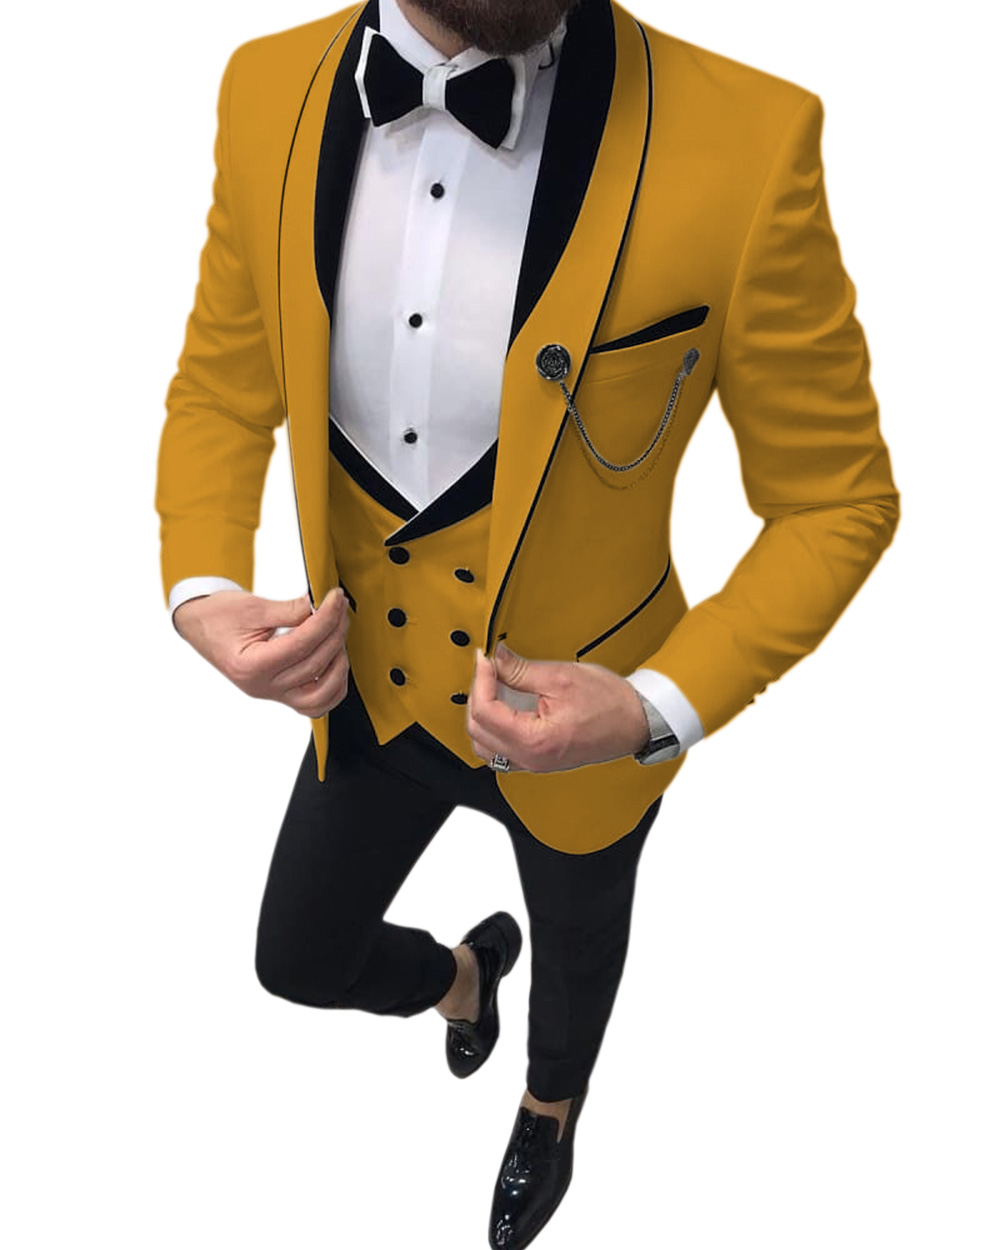 Men's Suits Slim Fit 3 Piece Prom Tuxedos Shawl Lapel Double Breasted Vest Tuxedos Blazer Wedding Party (Blazer+vest+Pants)